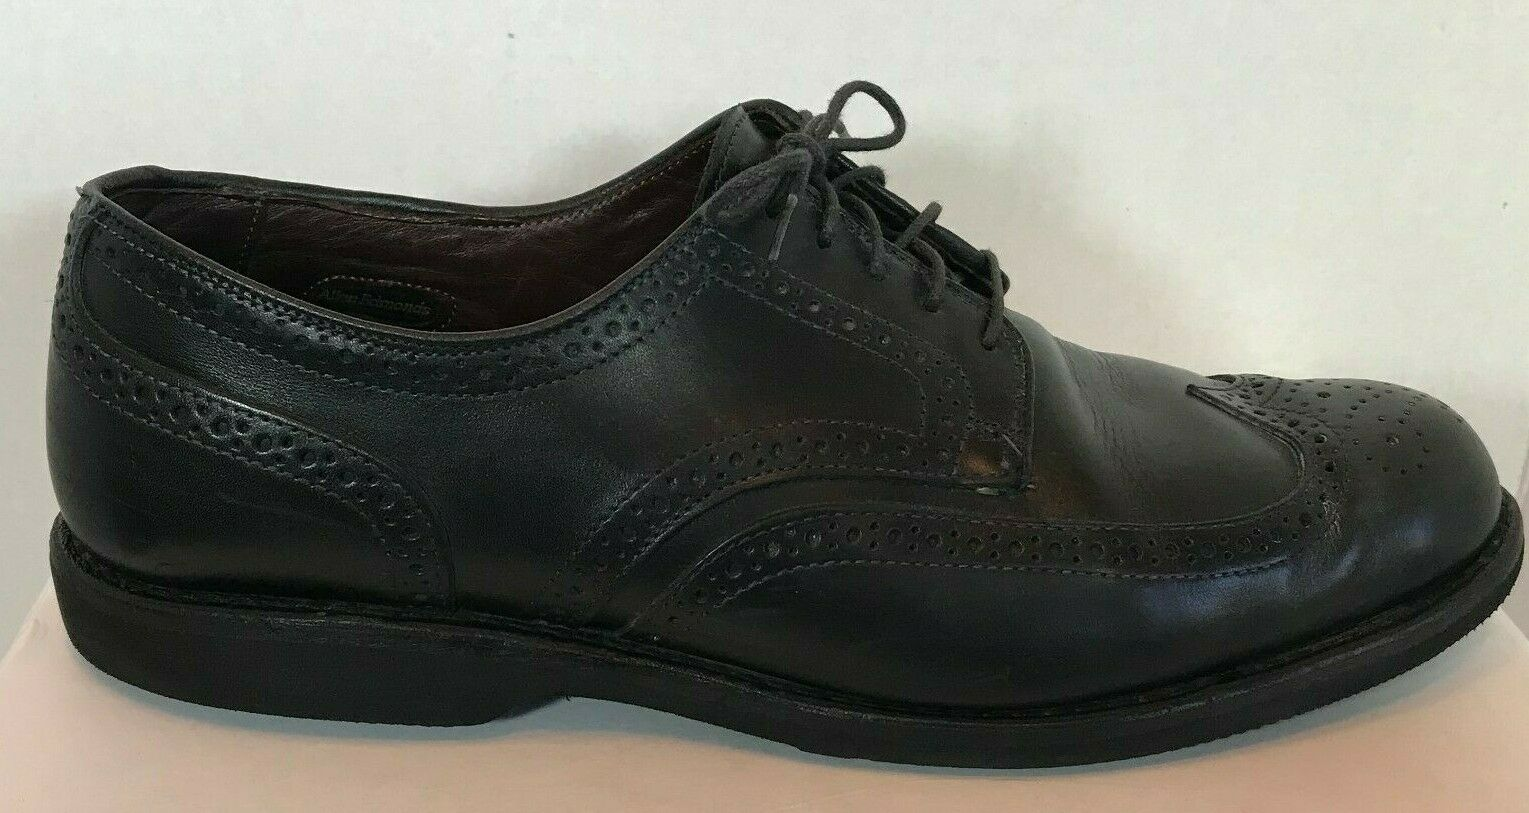 Allen Edmonds Road Warriors Men's Brogue shoes Size 12 Black Lace Leather